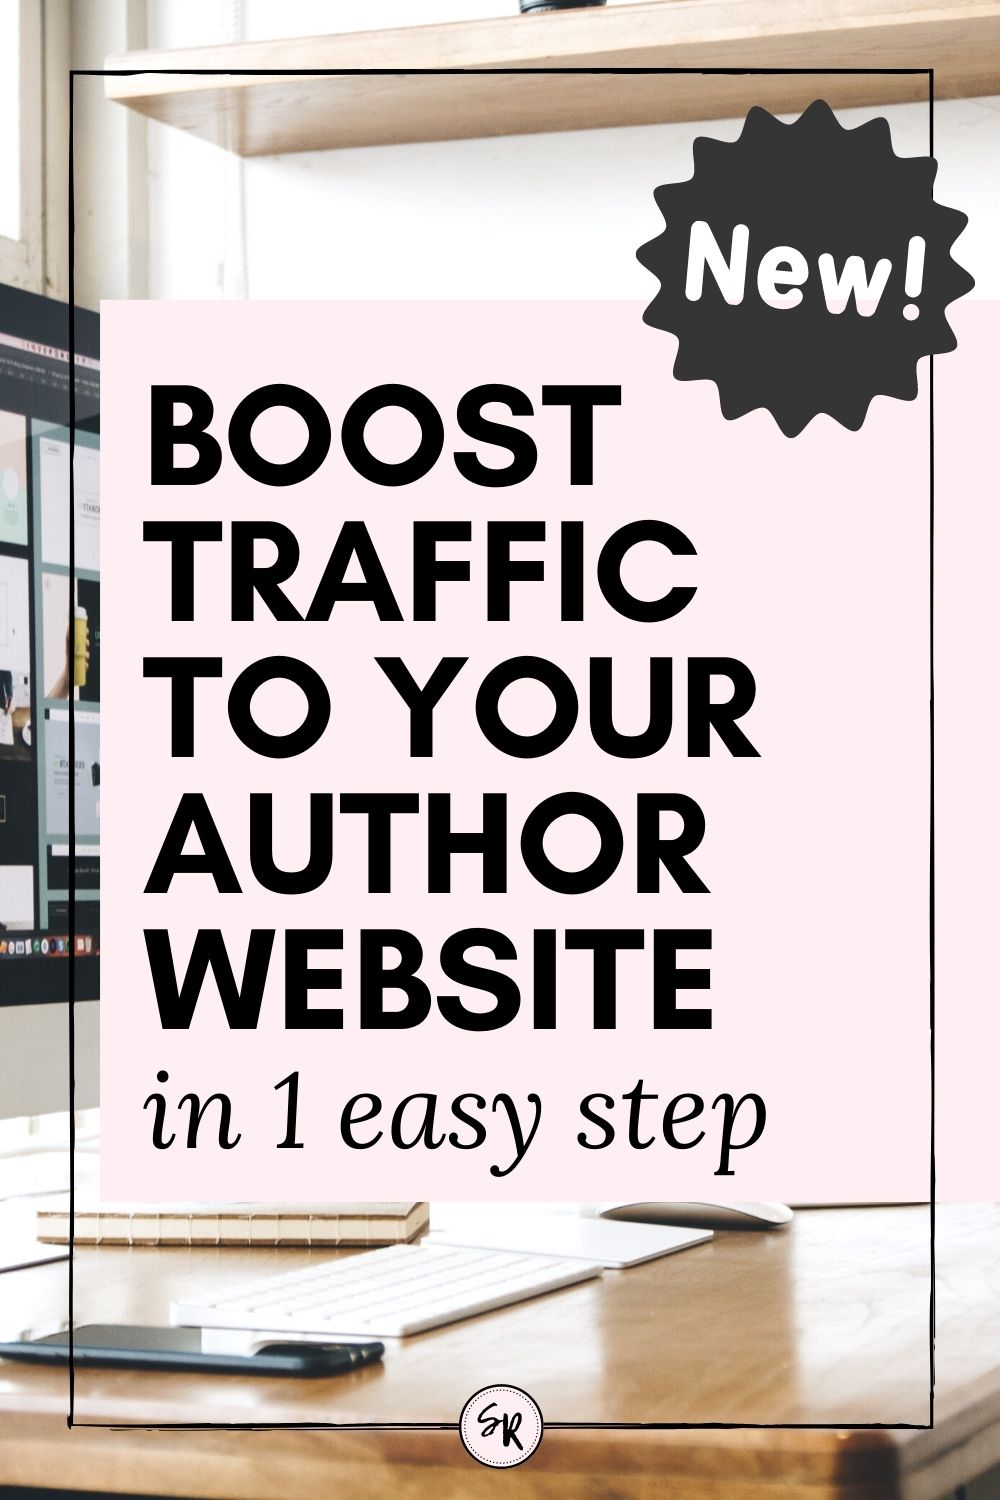 The Simple Way to Boost Traffic to Your Author Website: A Blog!